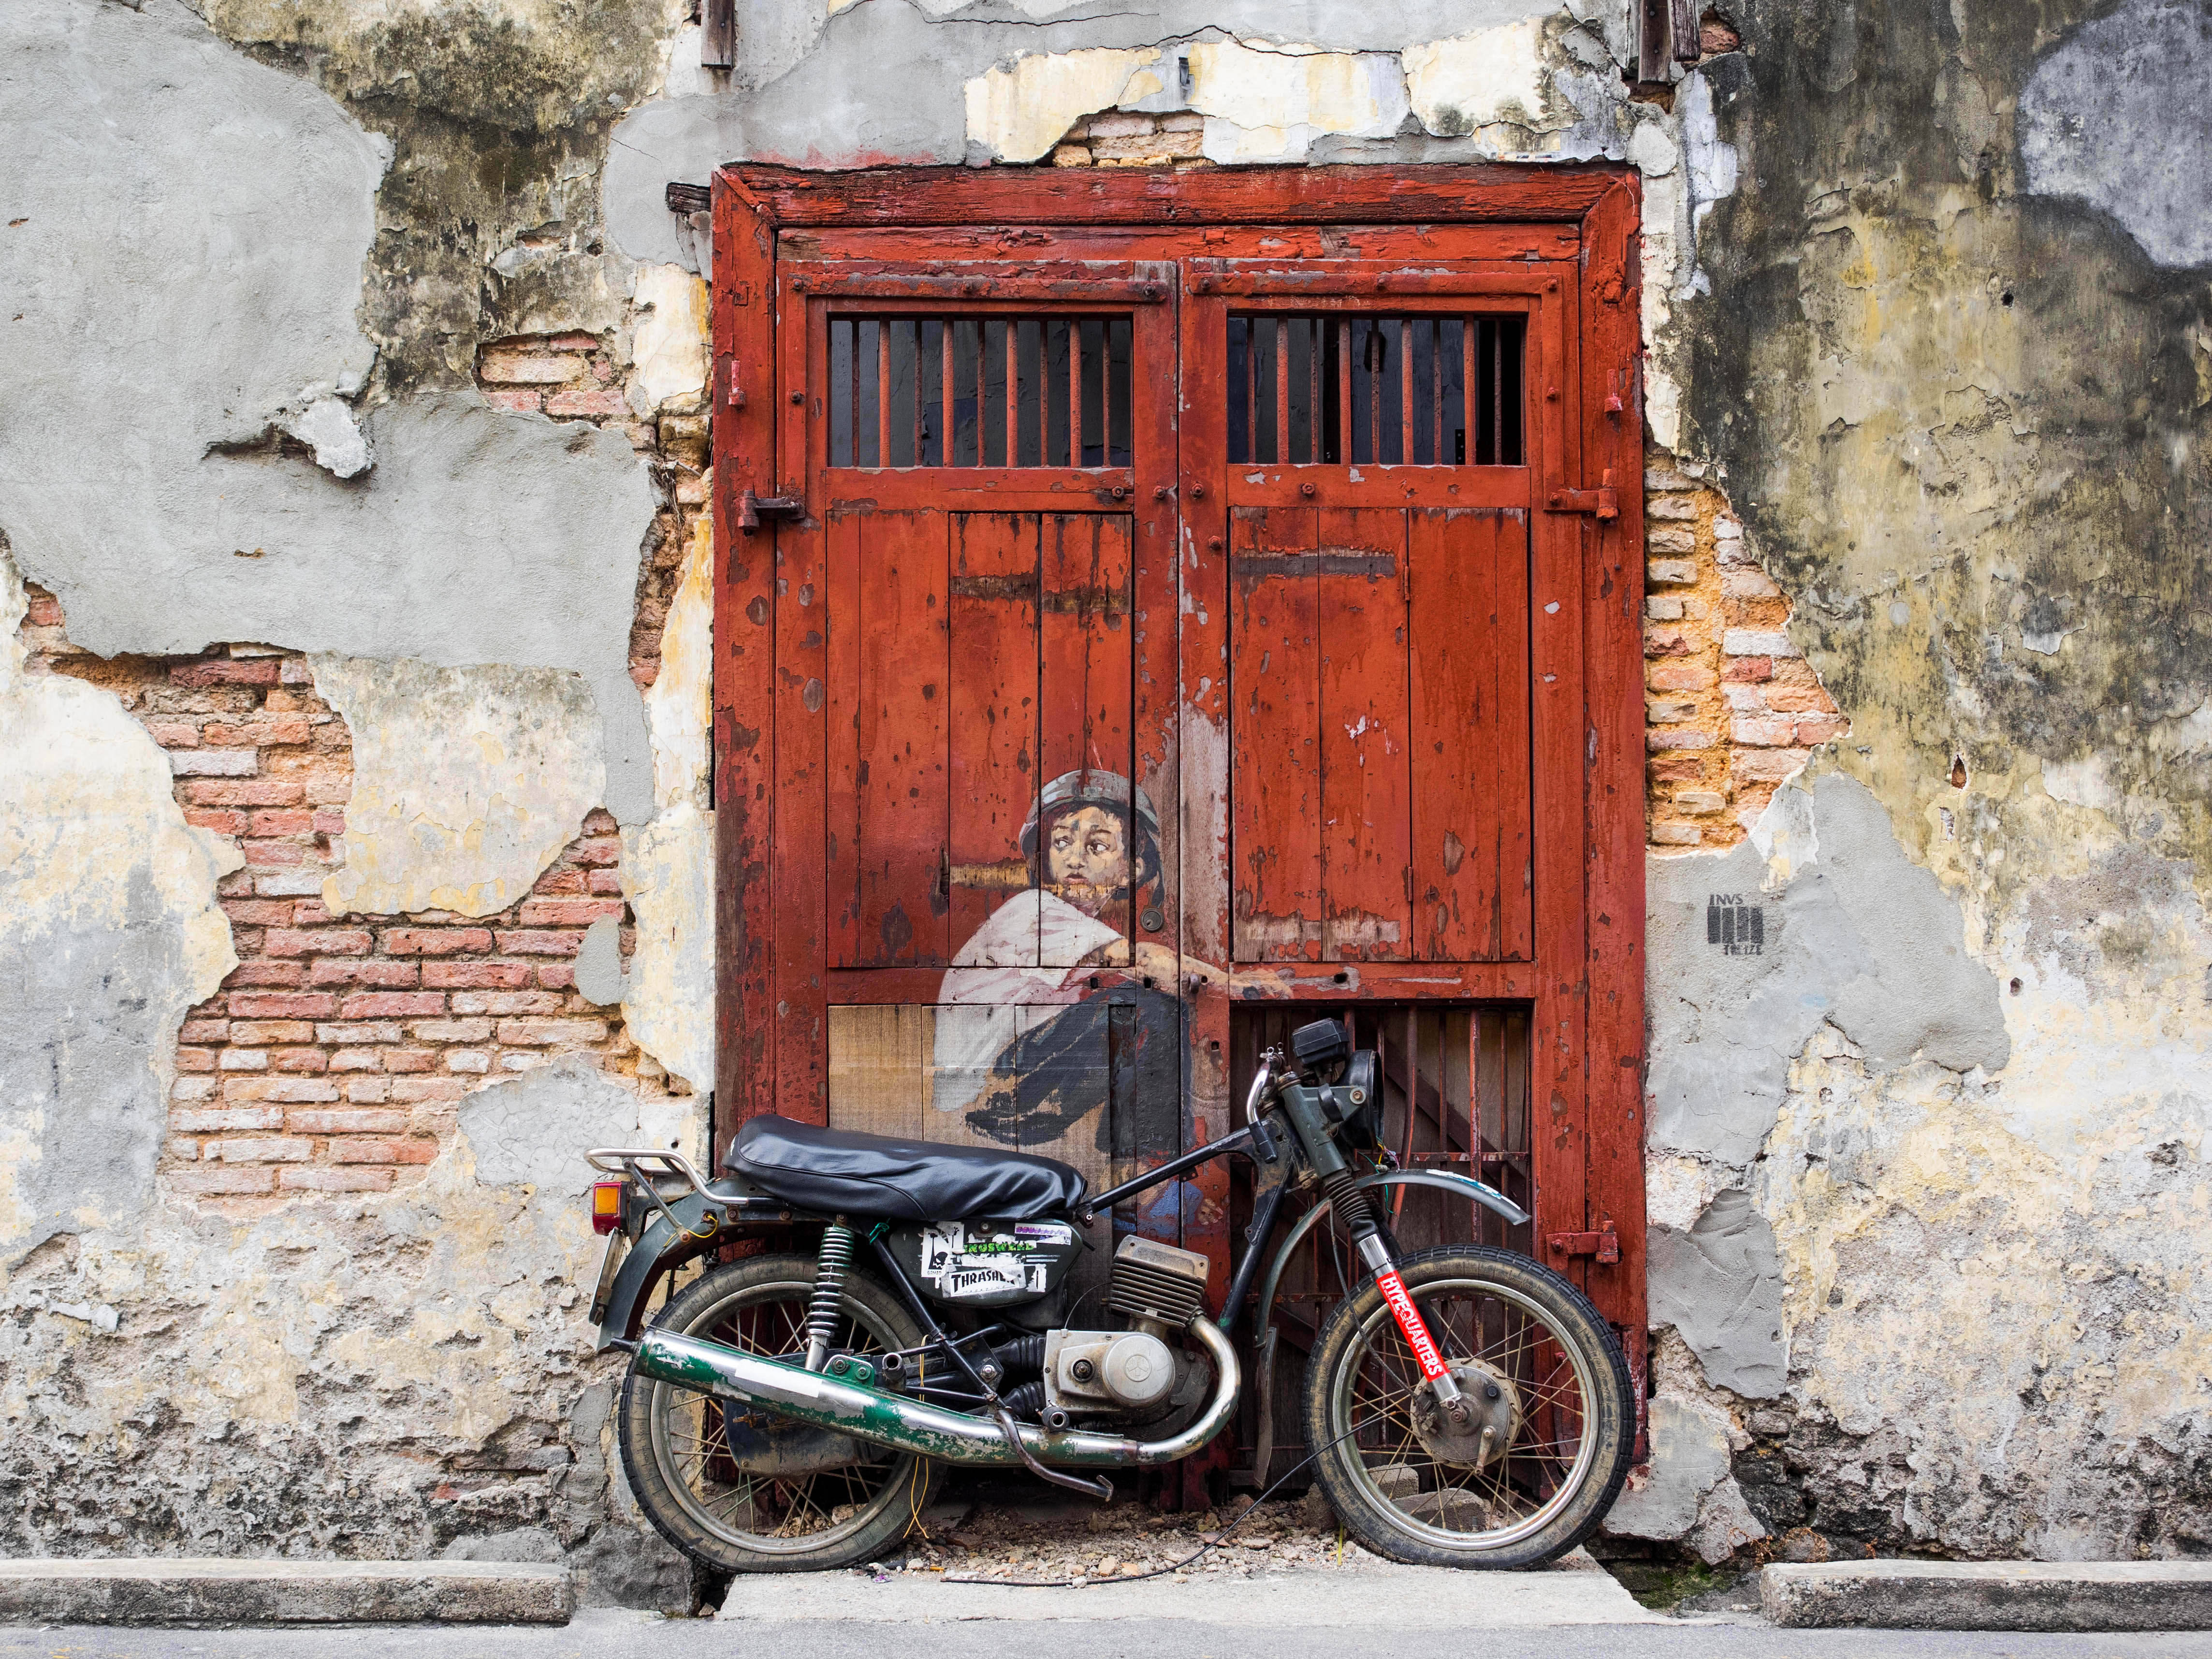 "George Town, Penang, Malaysia - April 23, 2014: ""Boy on a Bike"" street art mural by Lithuanian artist Ernest Zacharevic in George Town, Penang, Malaysia."